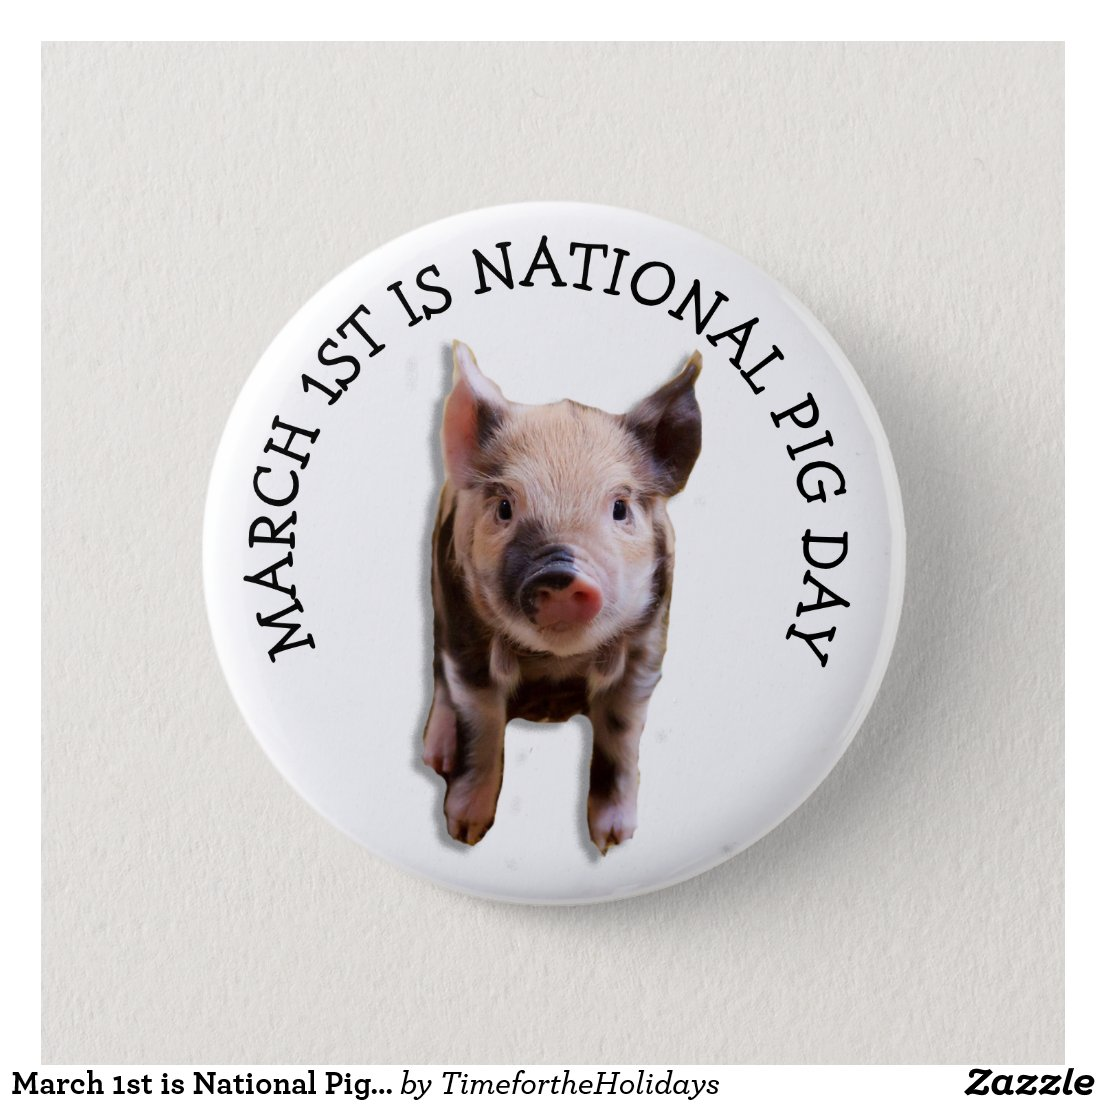 March 1st is National Pig Day Funny Holidays Button